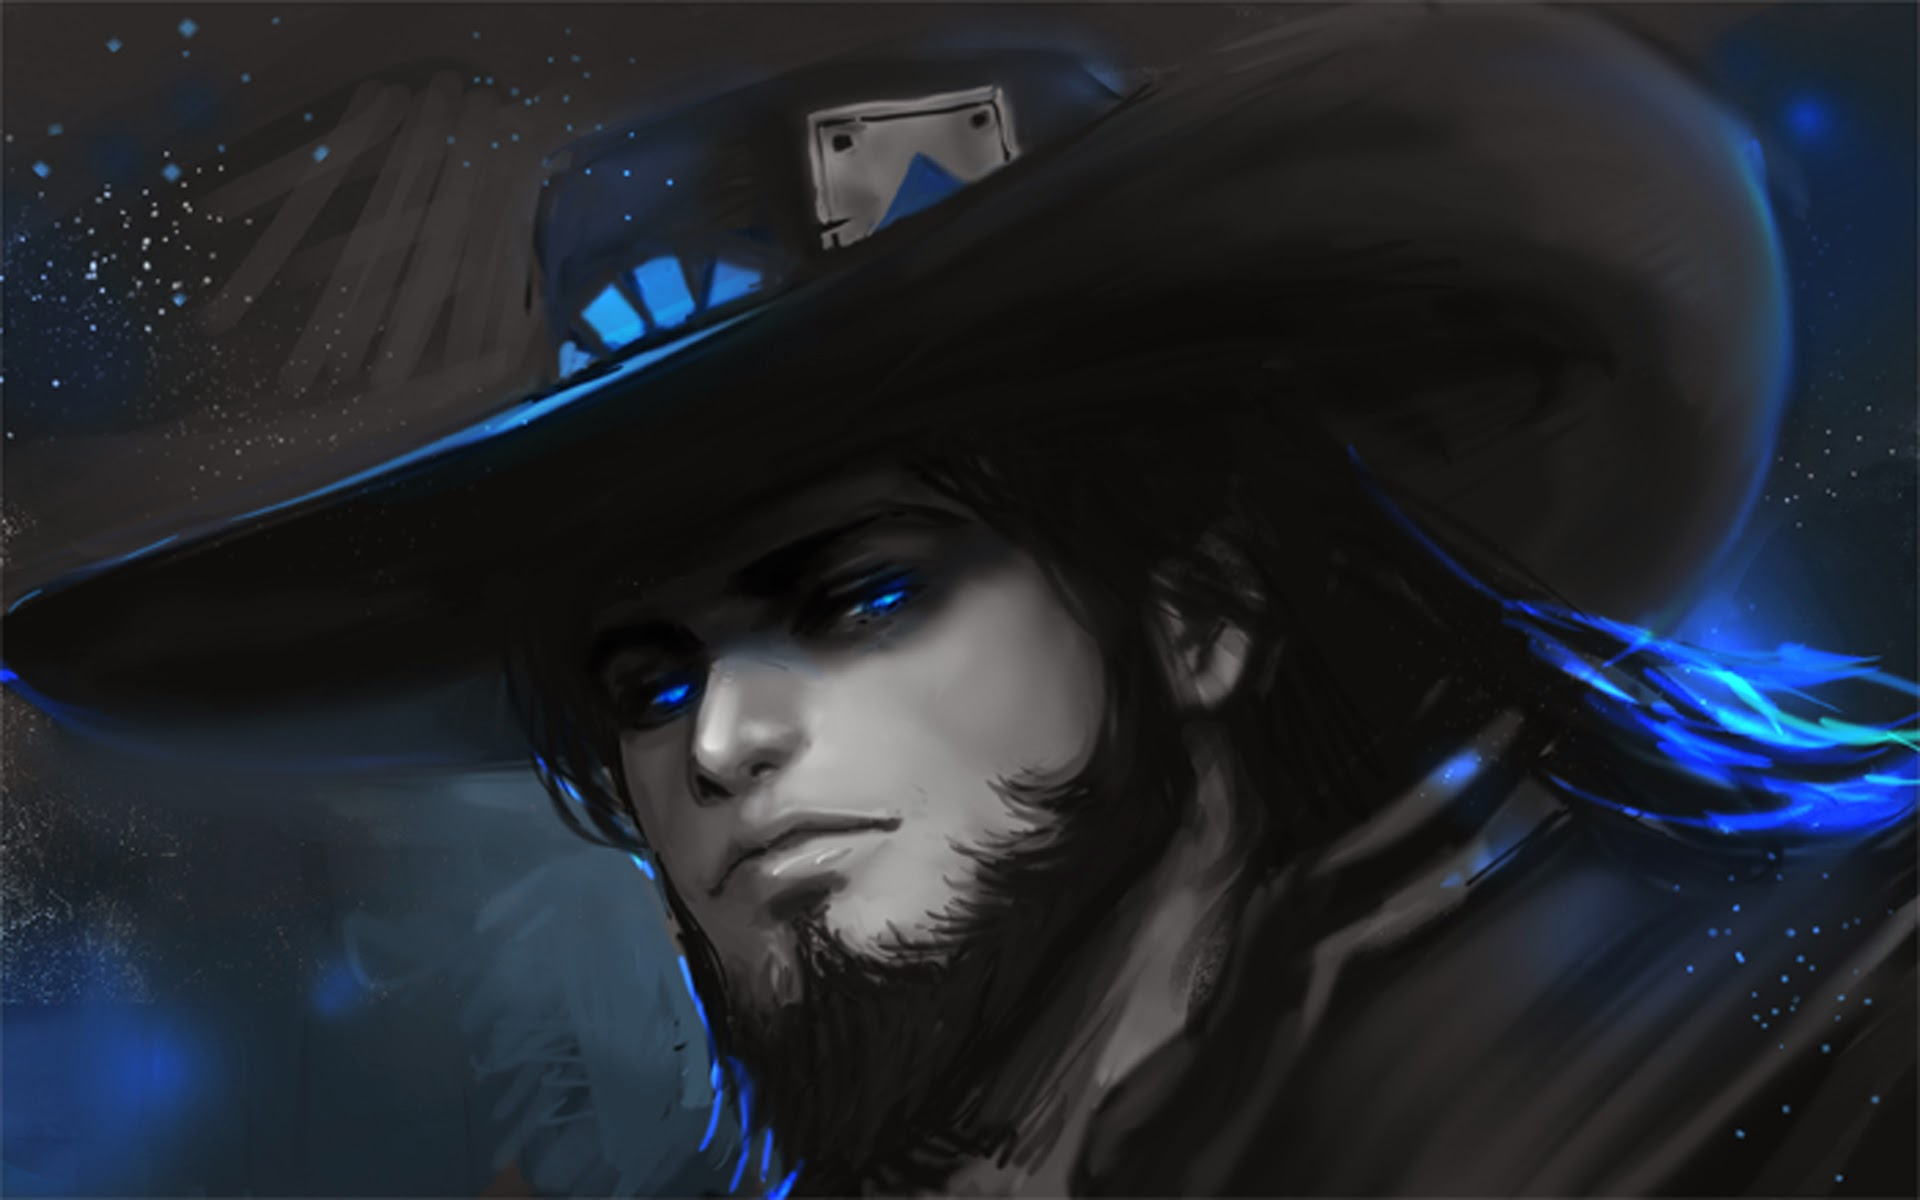 Twisted Fate League Of Legends Hd Wallpaper Lol Champion 1920x1200 8i